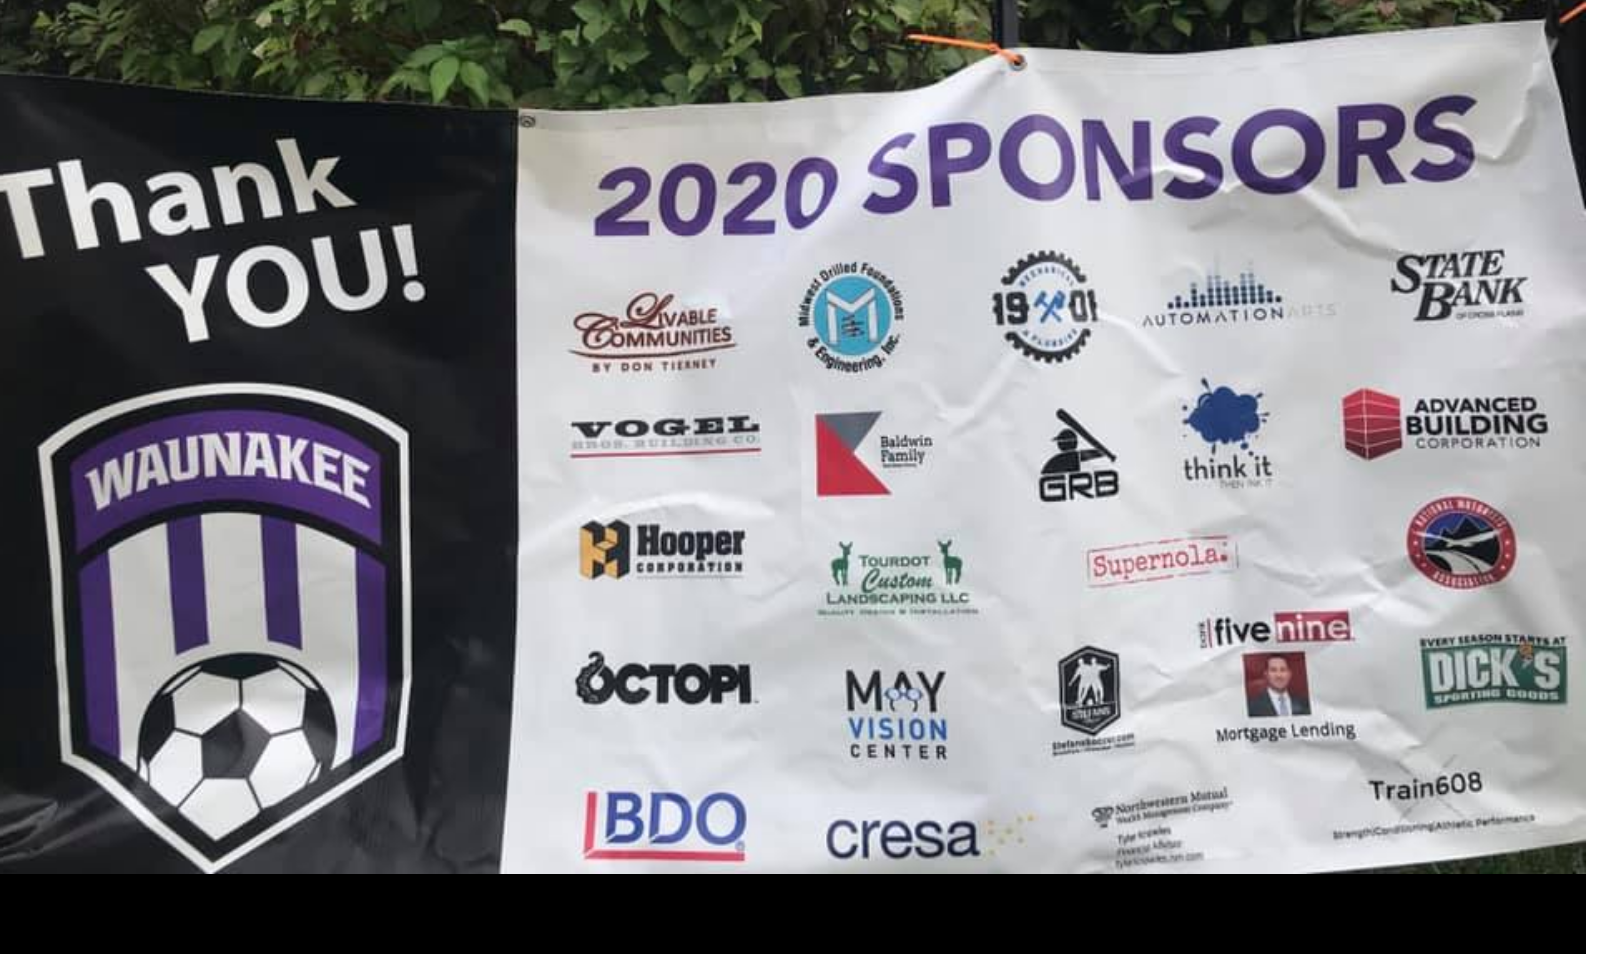 WASC Golf Outing 2021 - 2nd Annual